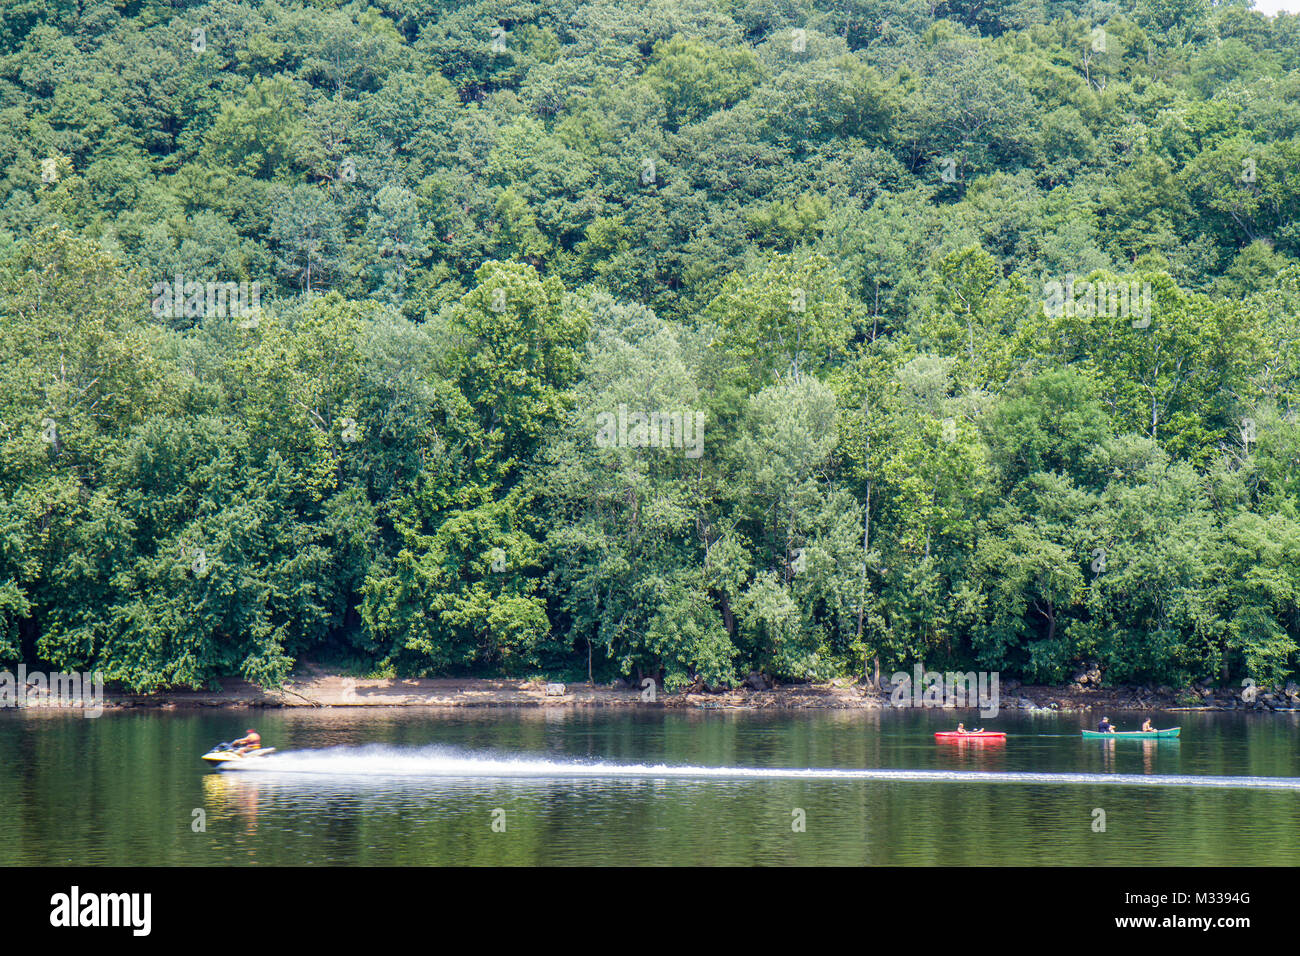 Point Pleasant, New Jersey New Jersey Delaware River View River Outfitters canoe arbres paysage ligne loisirs jet Photo Stock